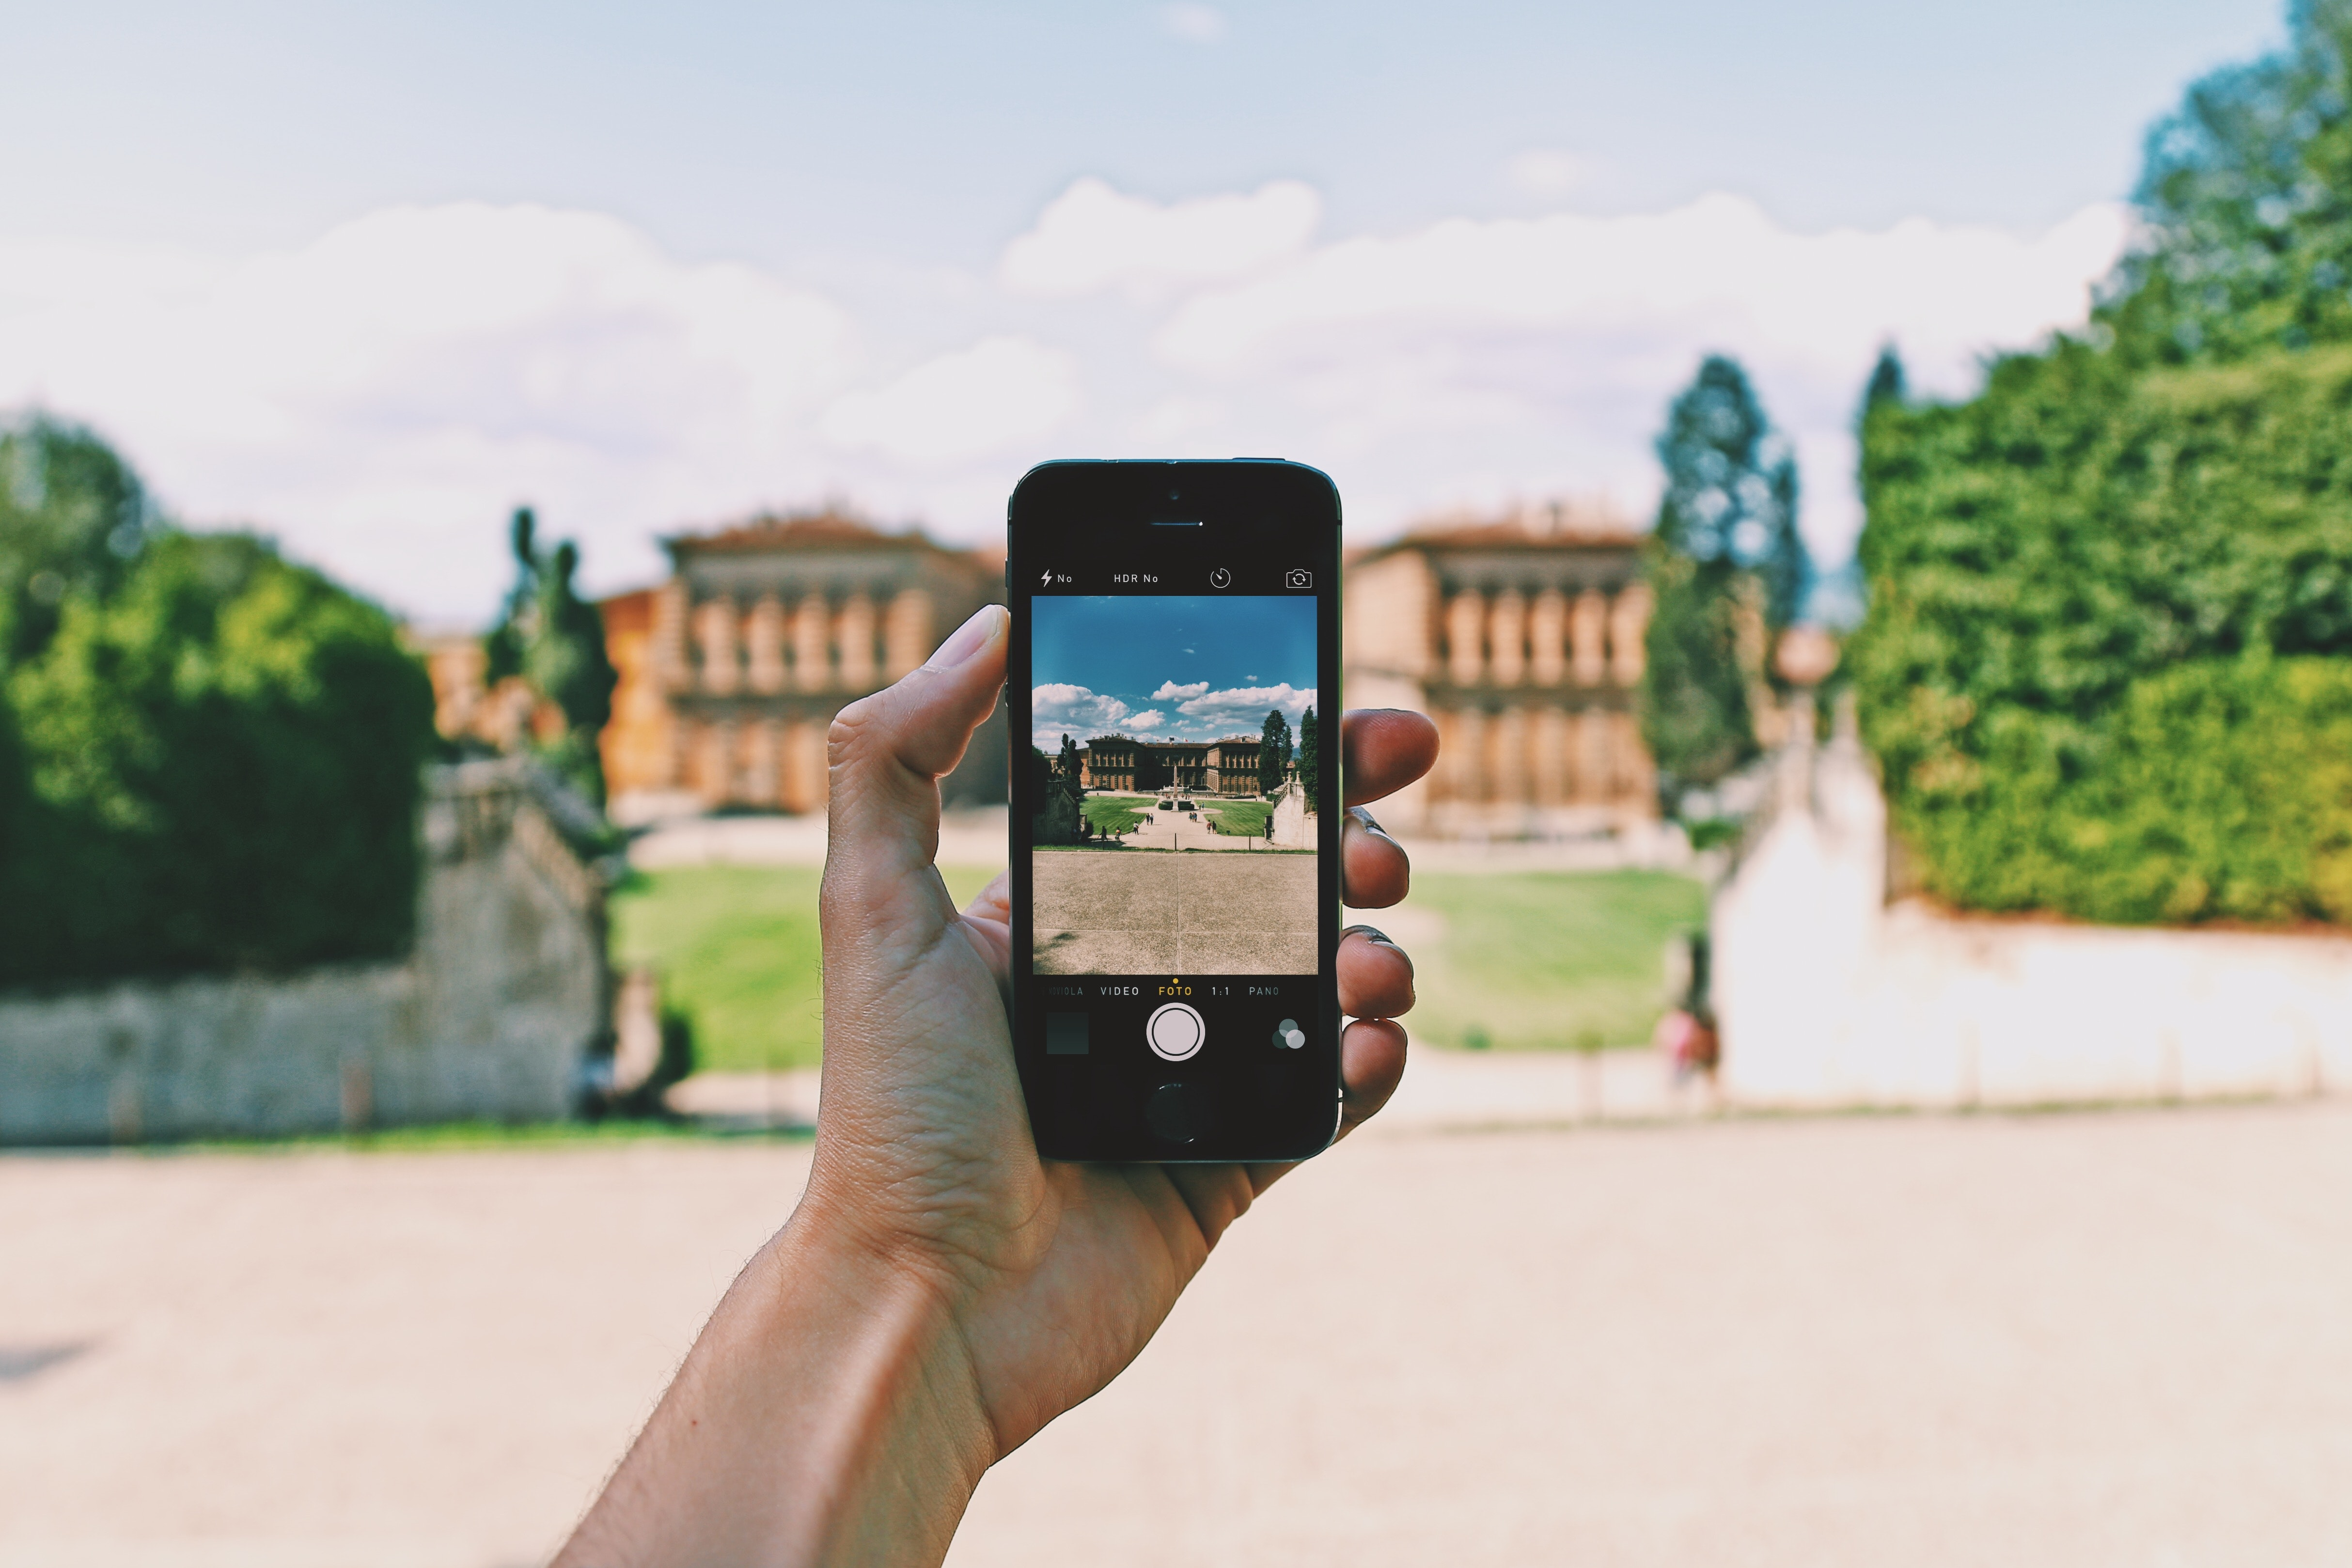 Person using space gray iphone 5s taking a picture of landmark during day photo